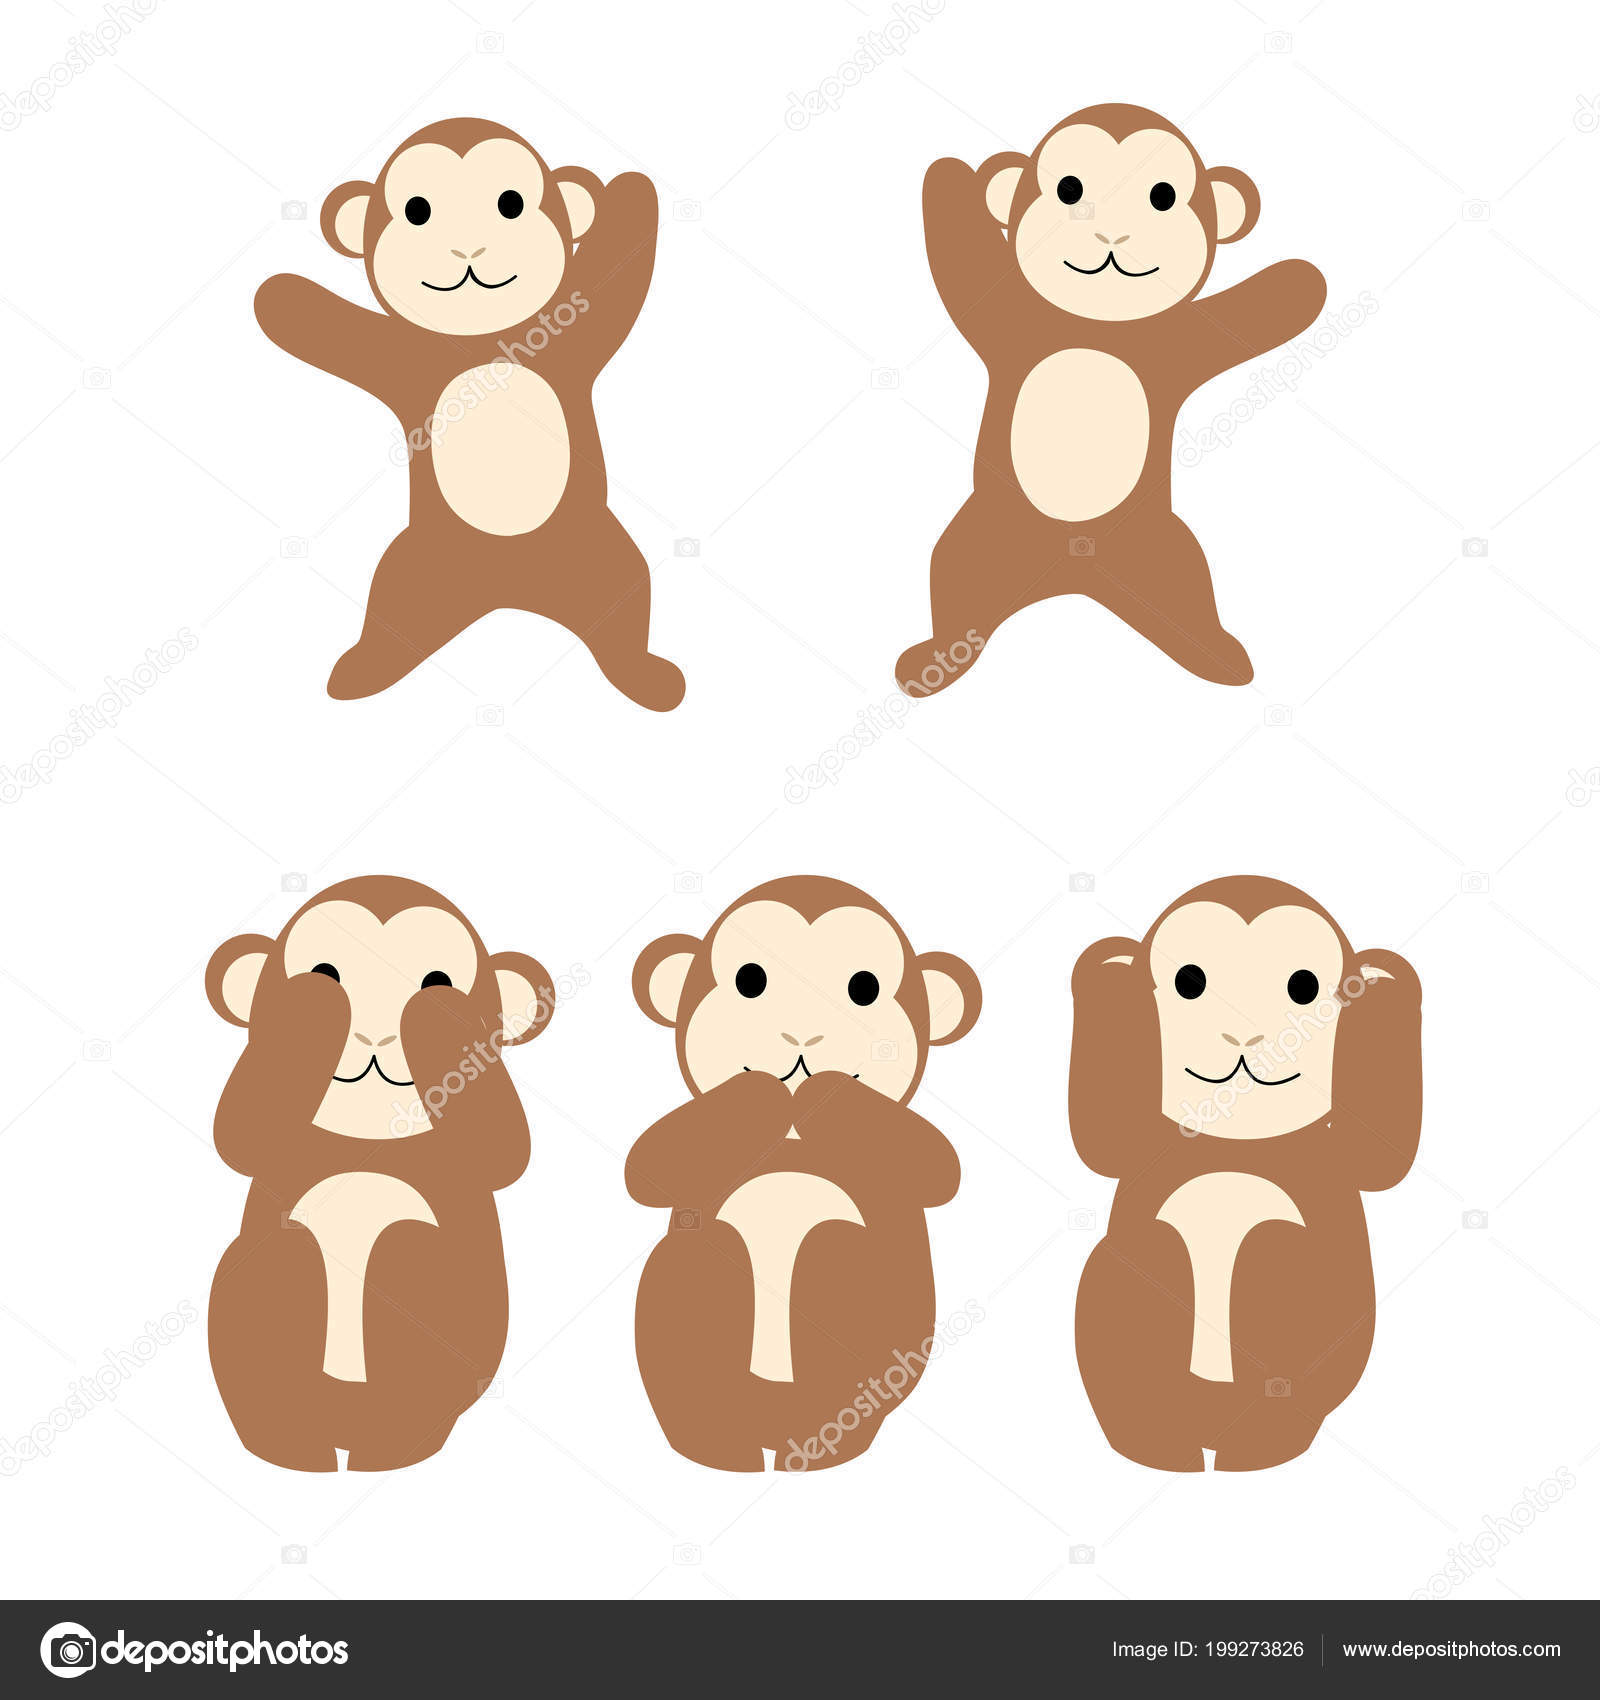 2 dancing monkeys do not say no need to say no objections pose monkey vector by hichako